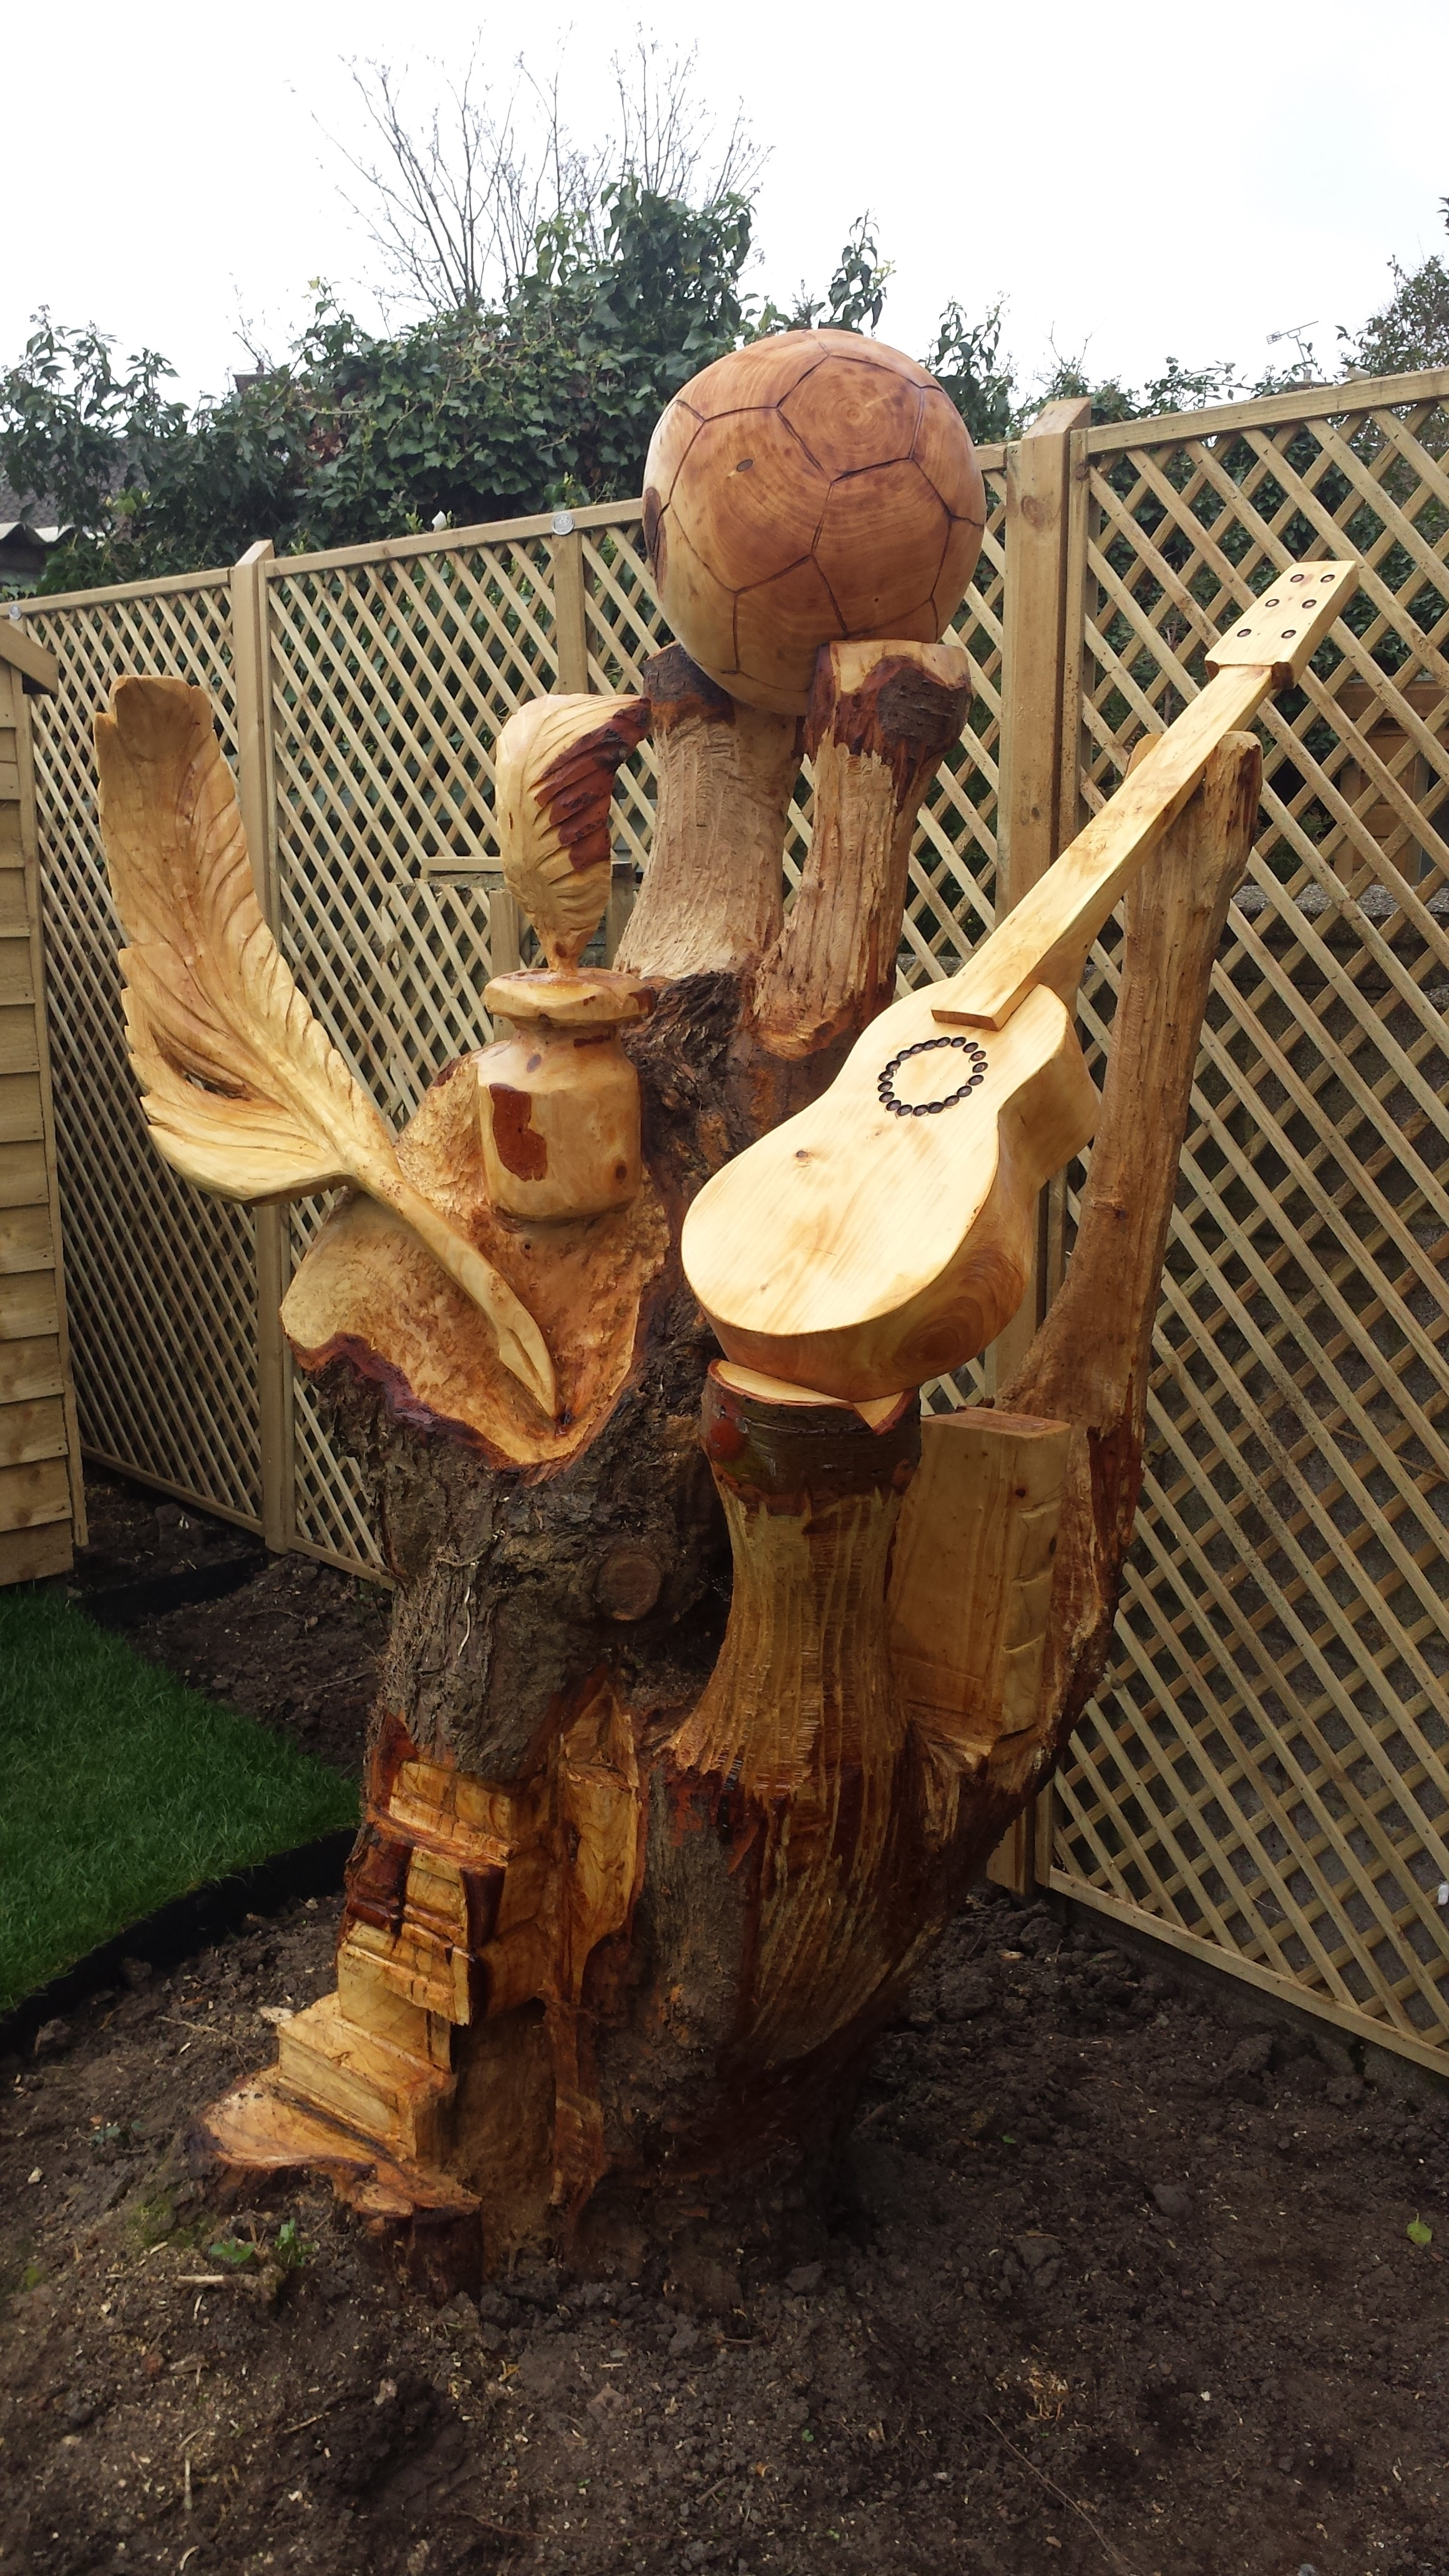 Gallery carvings chainsaw carving sculpture